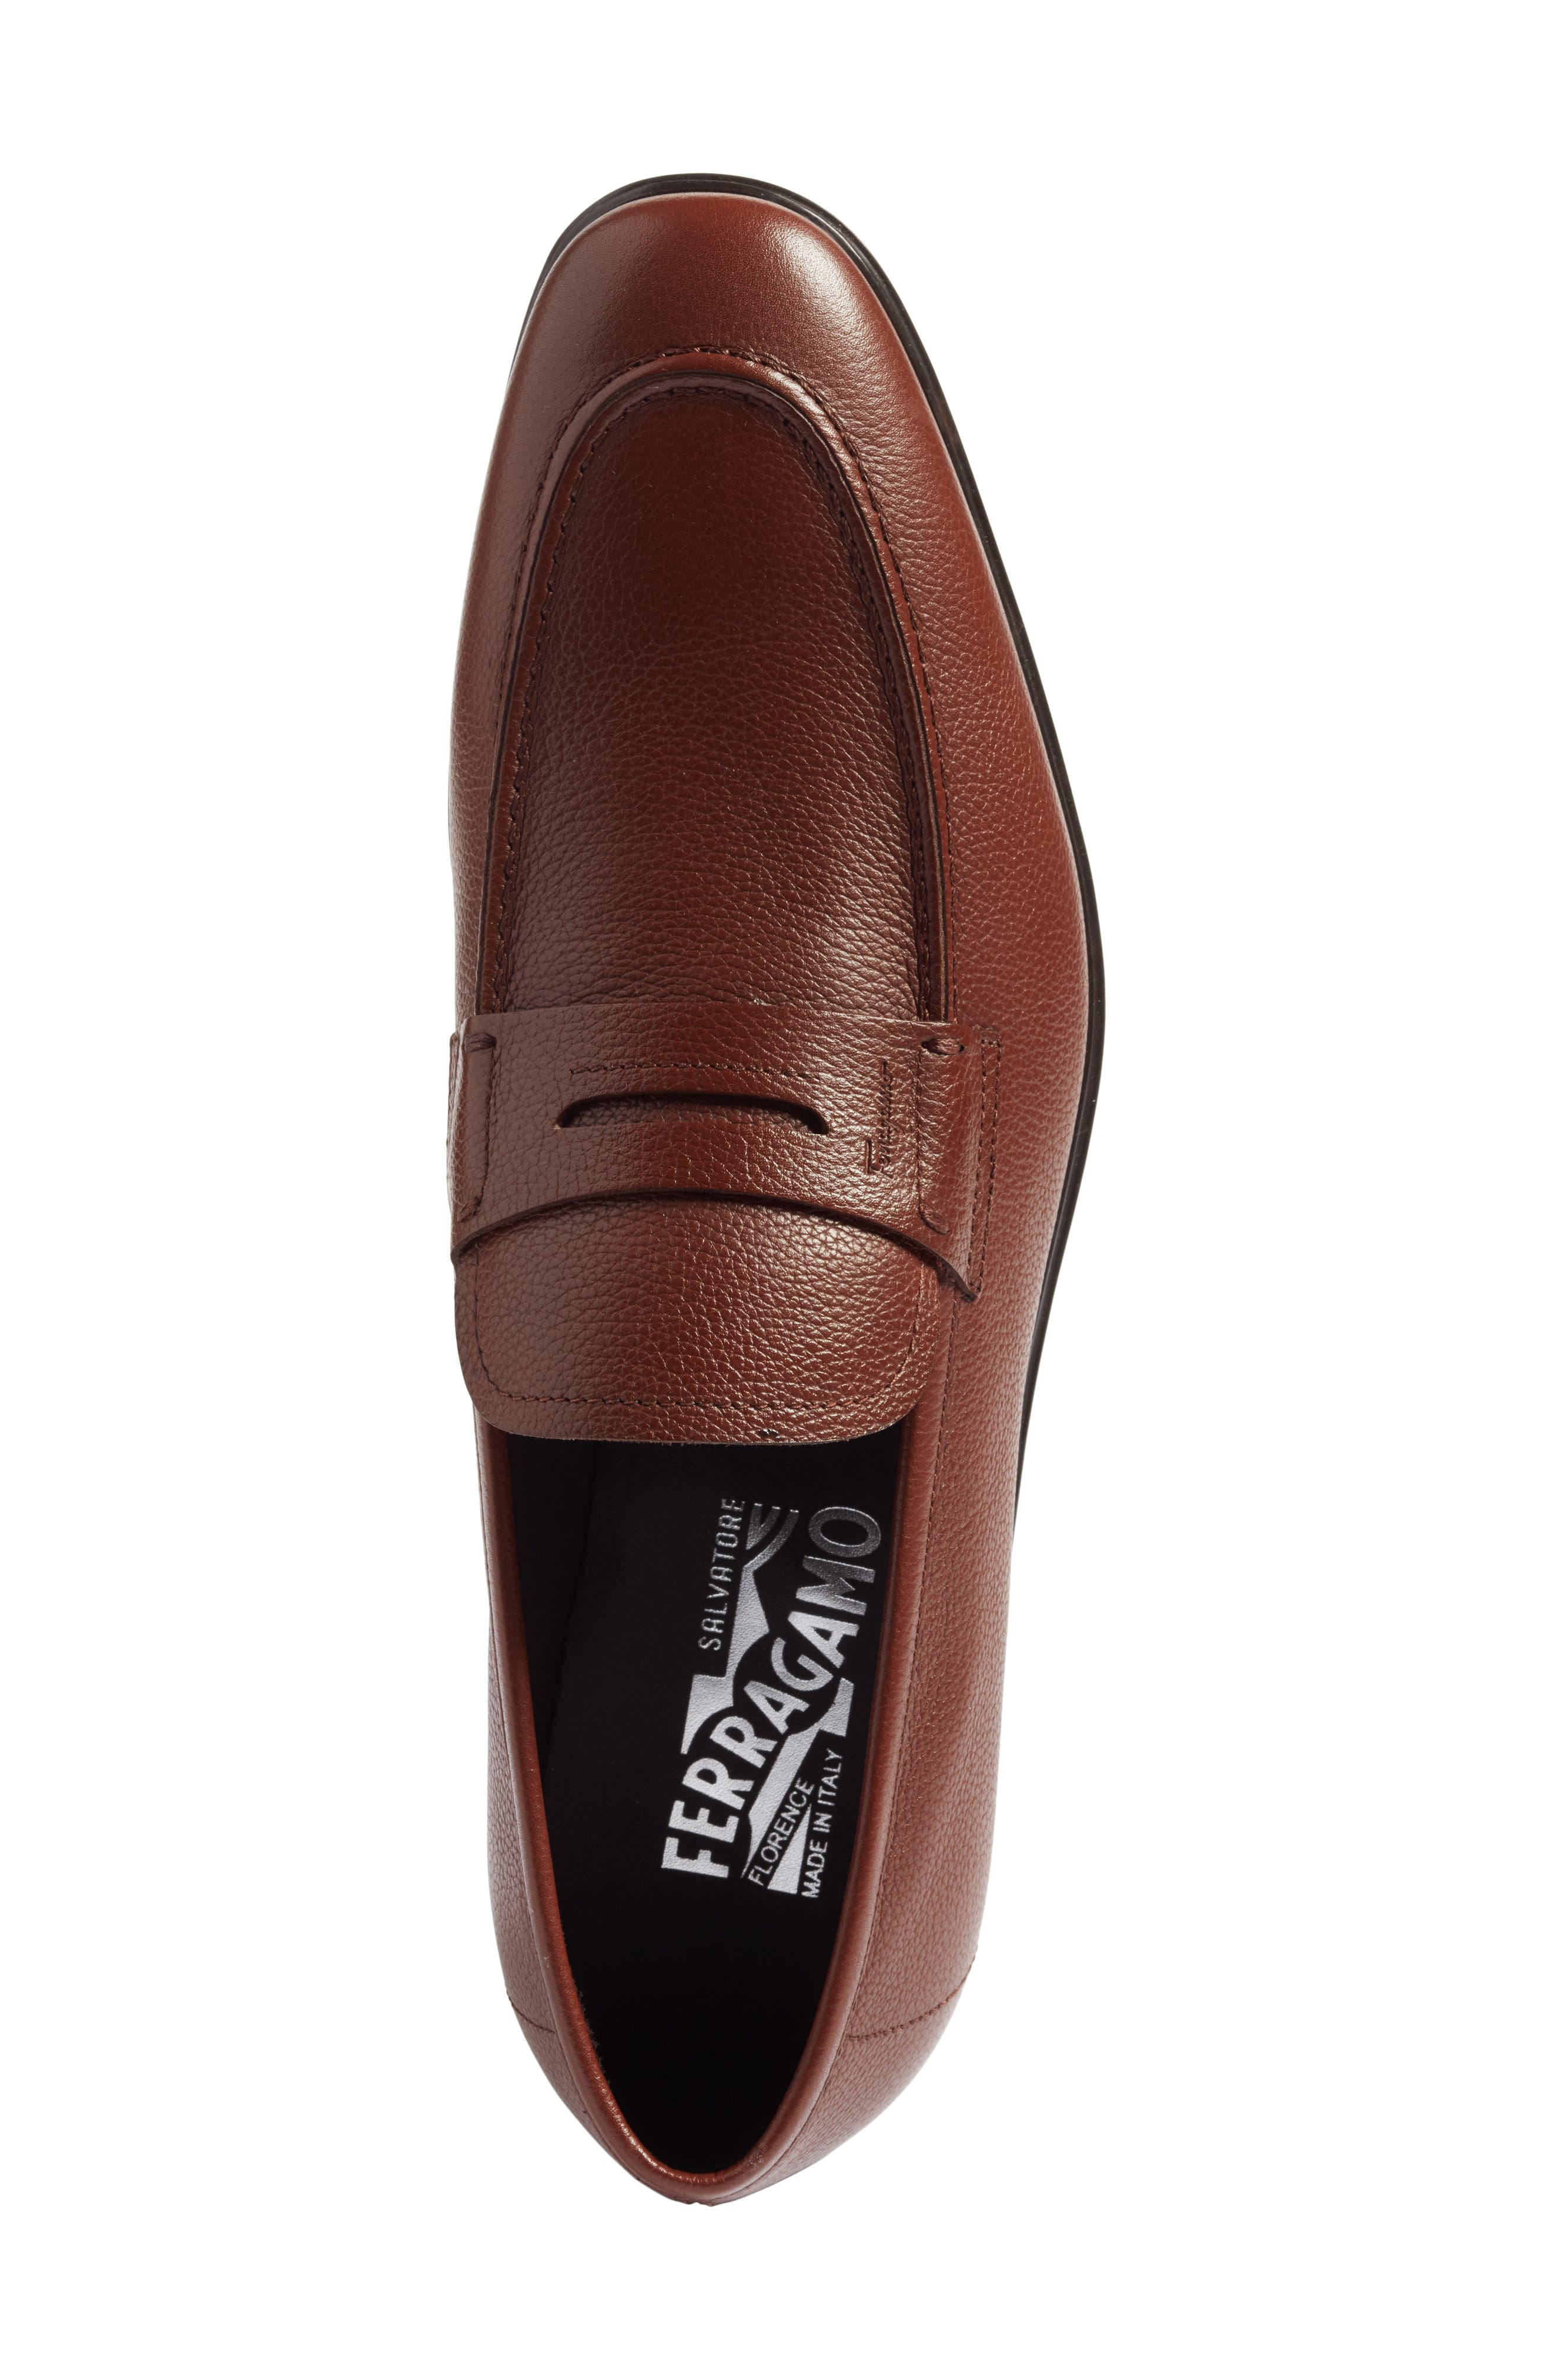 Fiorino 2 Penny Loafer,                             Alternate thumbnail 5, color,                             Dark Cuoio Leather